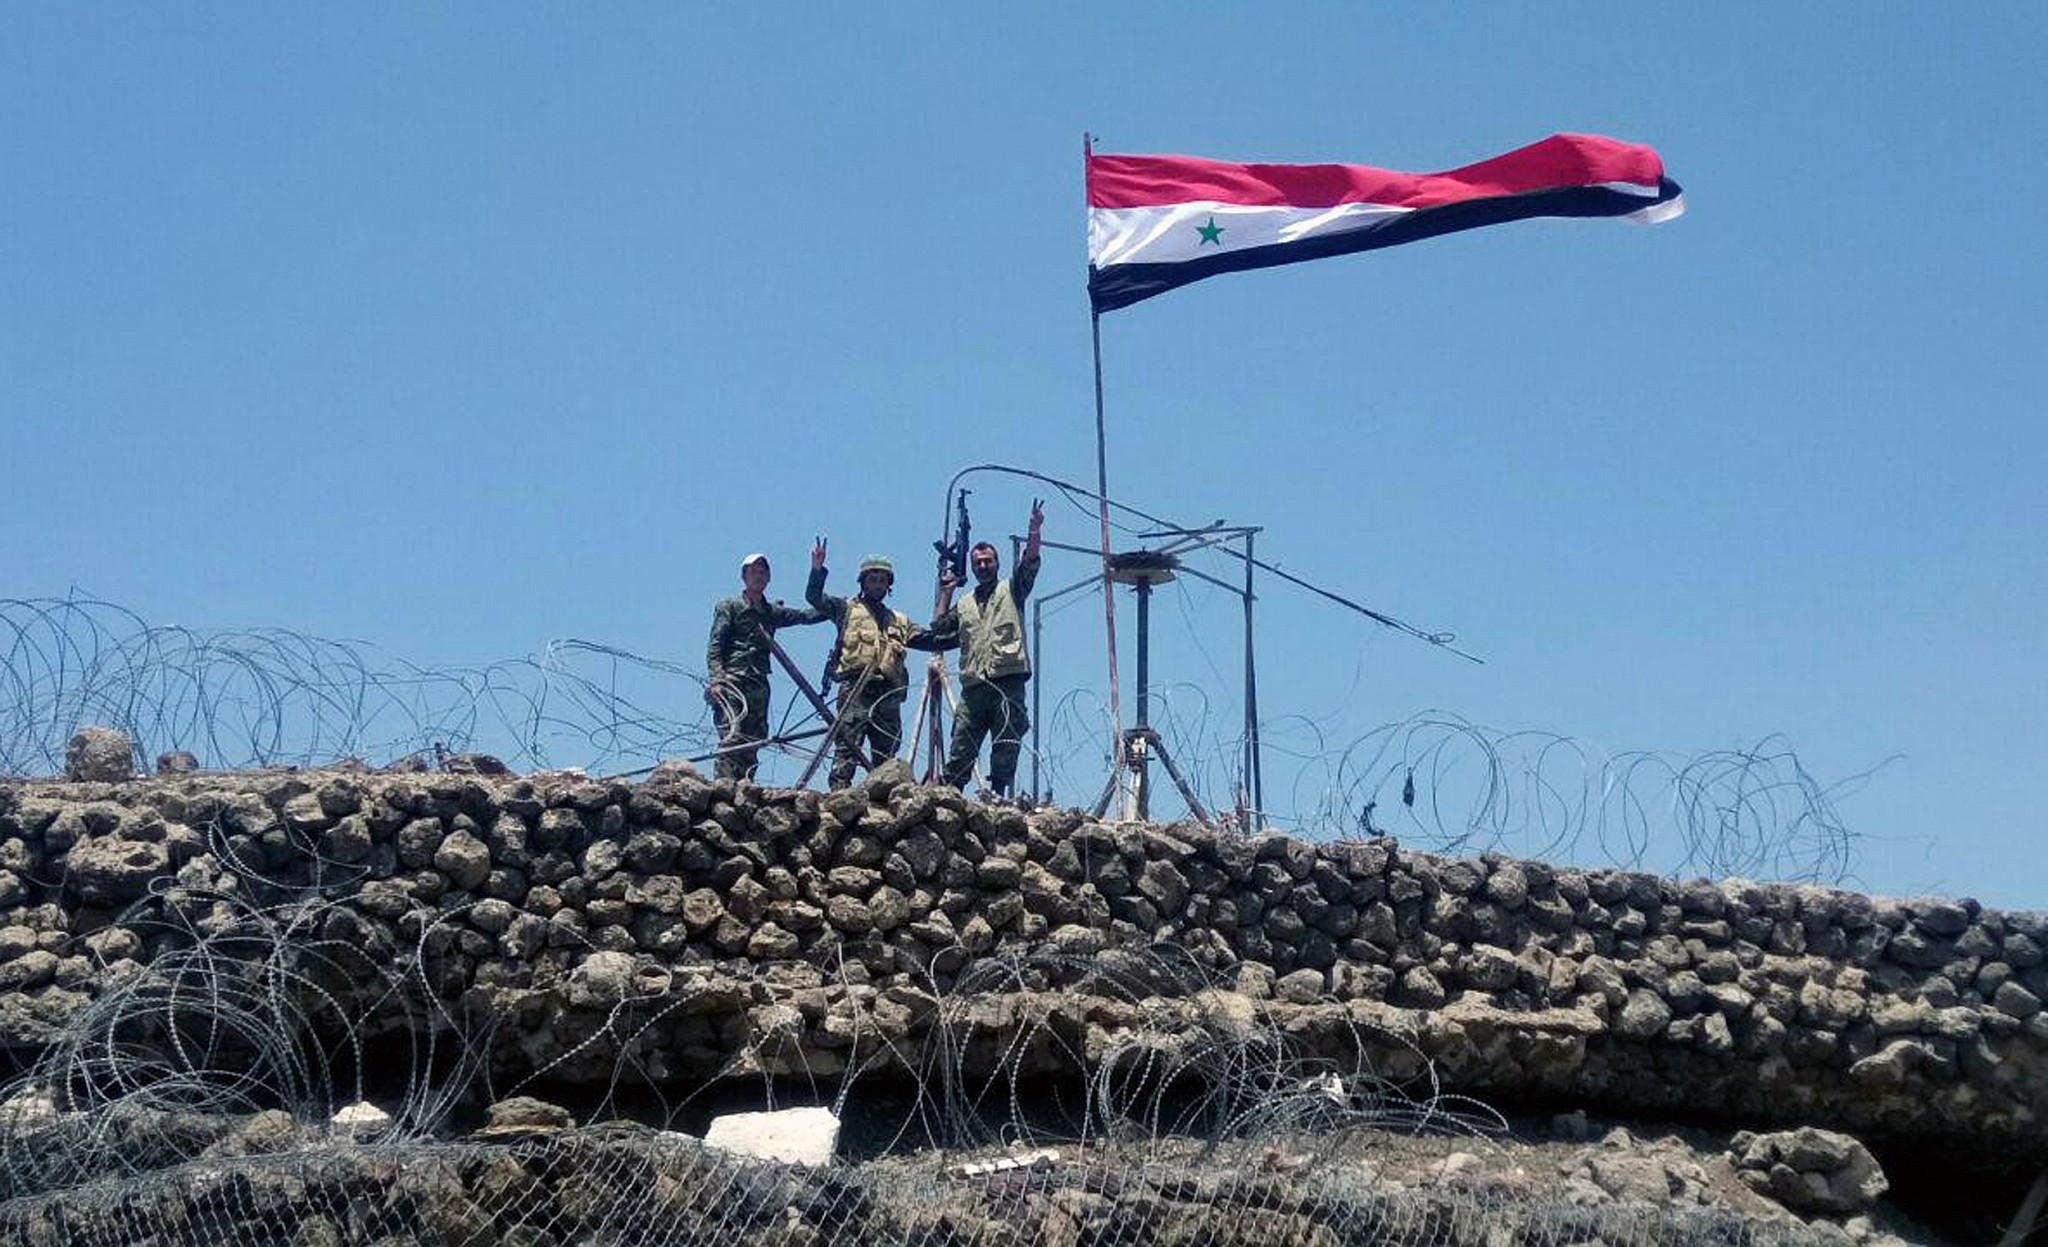 Regime forces soldiers raising victory sign next to the flag in Tall al-Harrah on the highest hill in the southeastern governorate of Daraa (AFP)